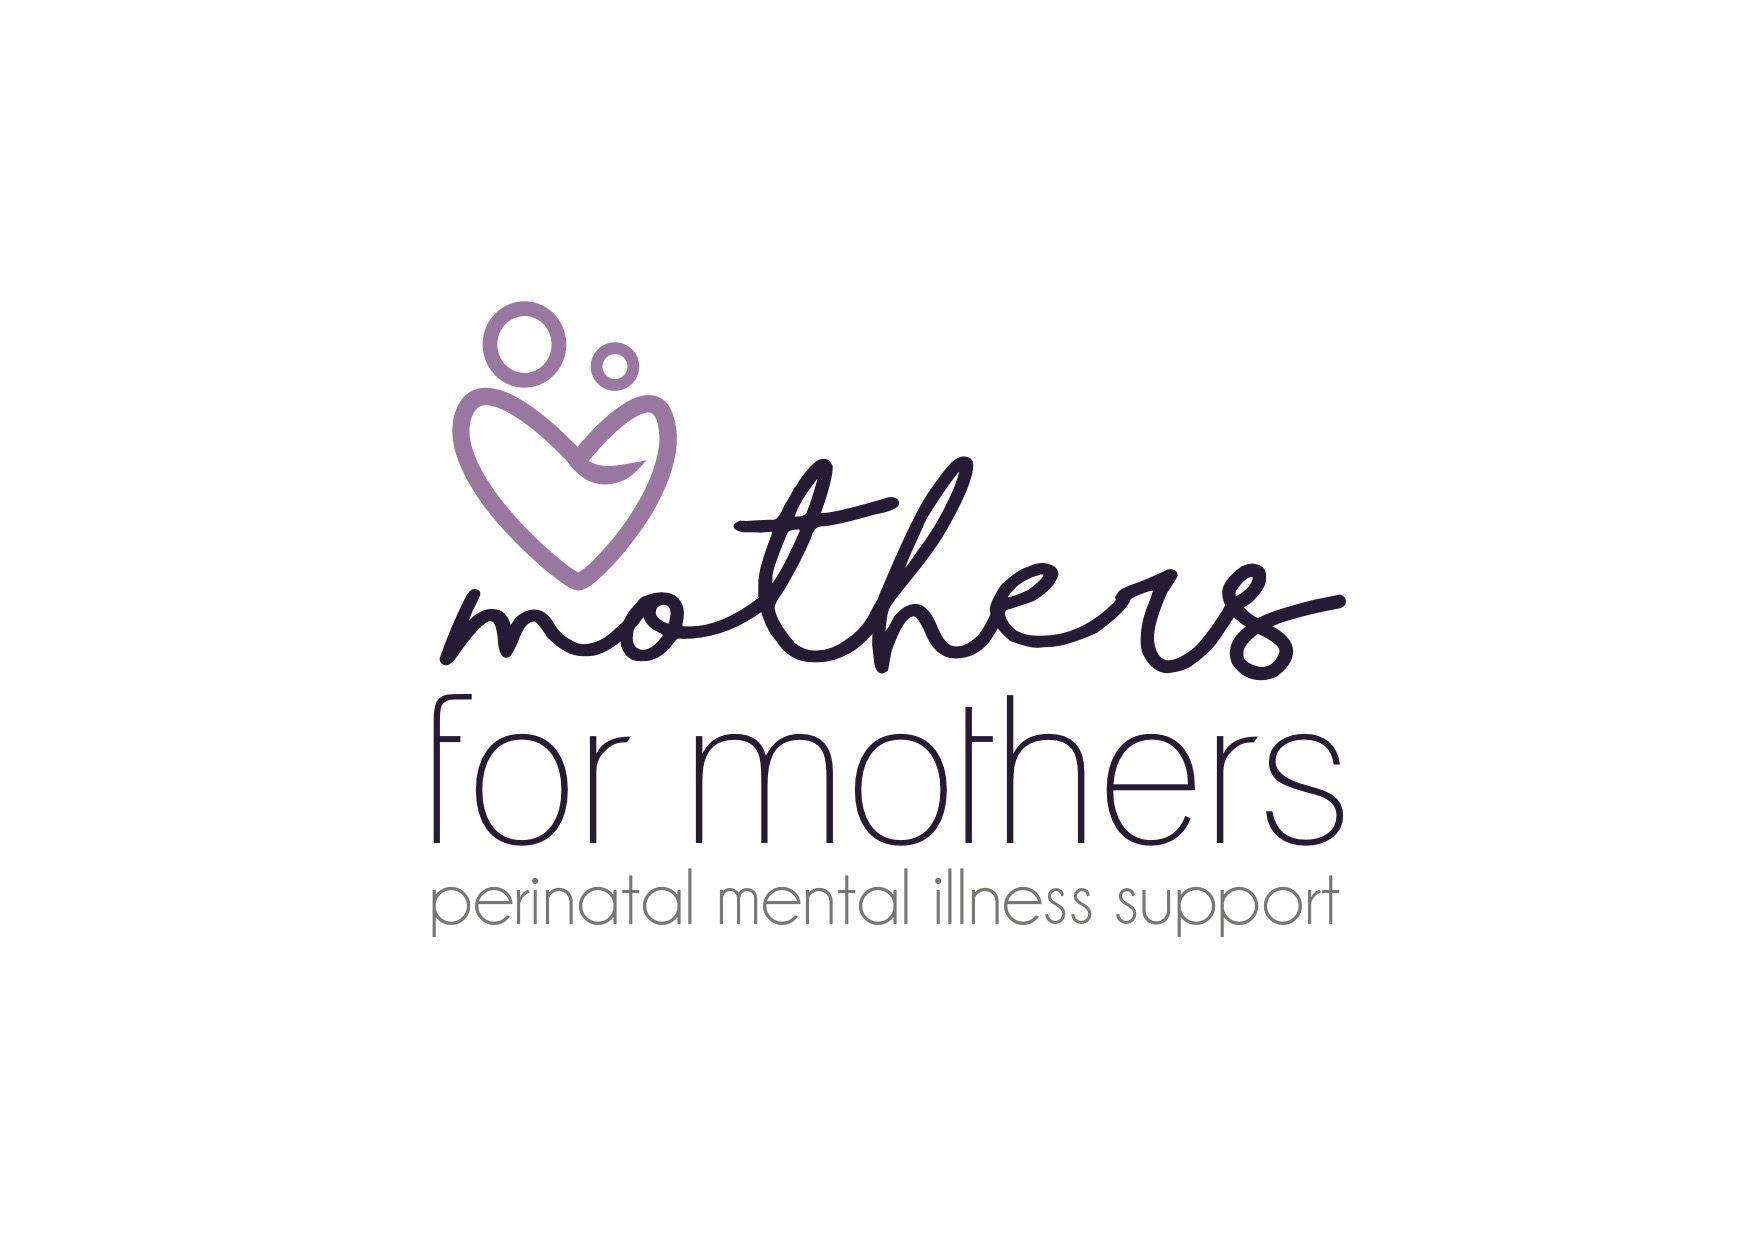 mothers-for-mothers-logo